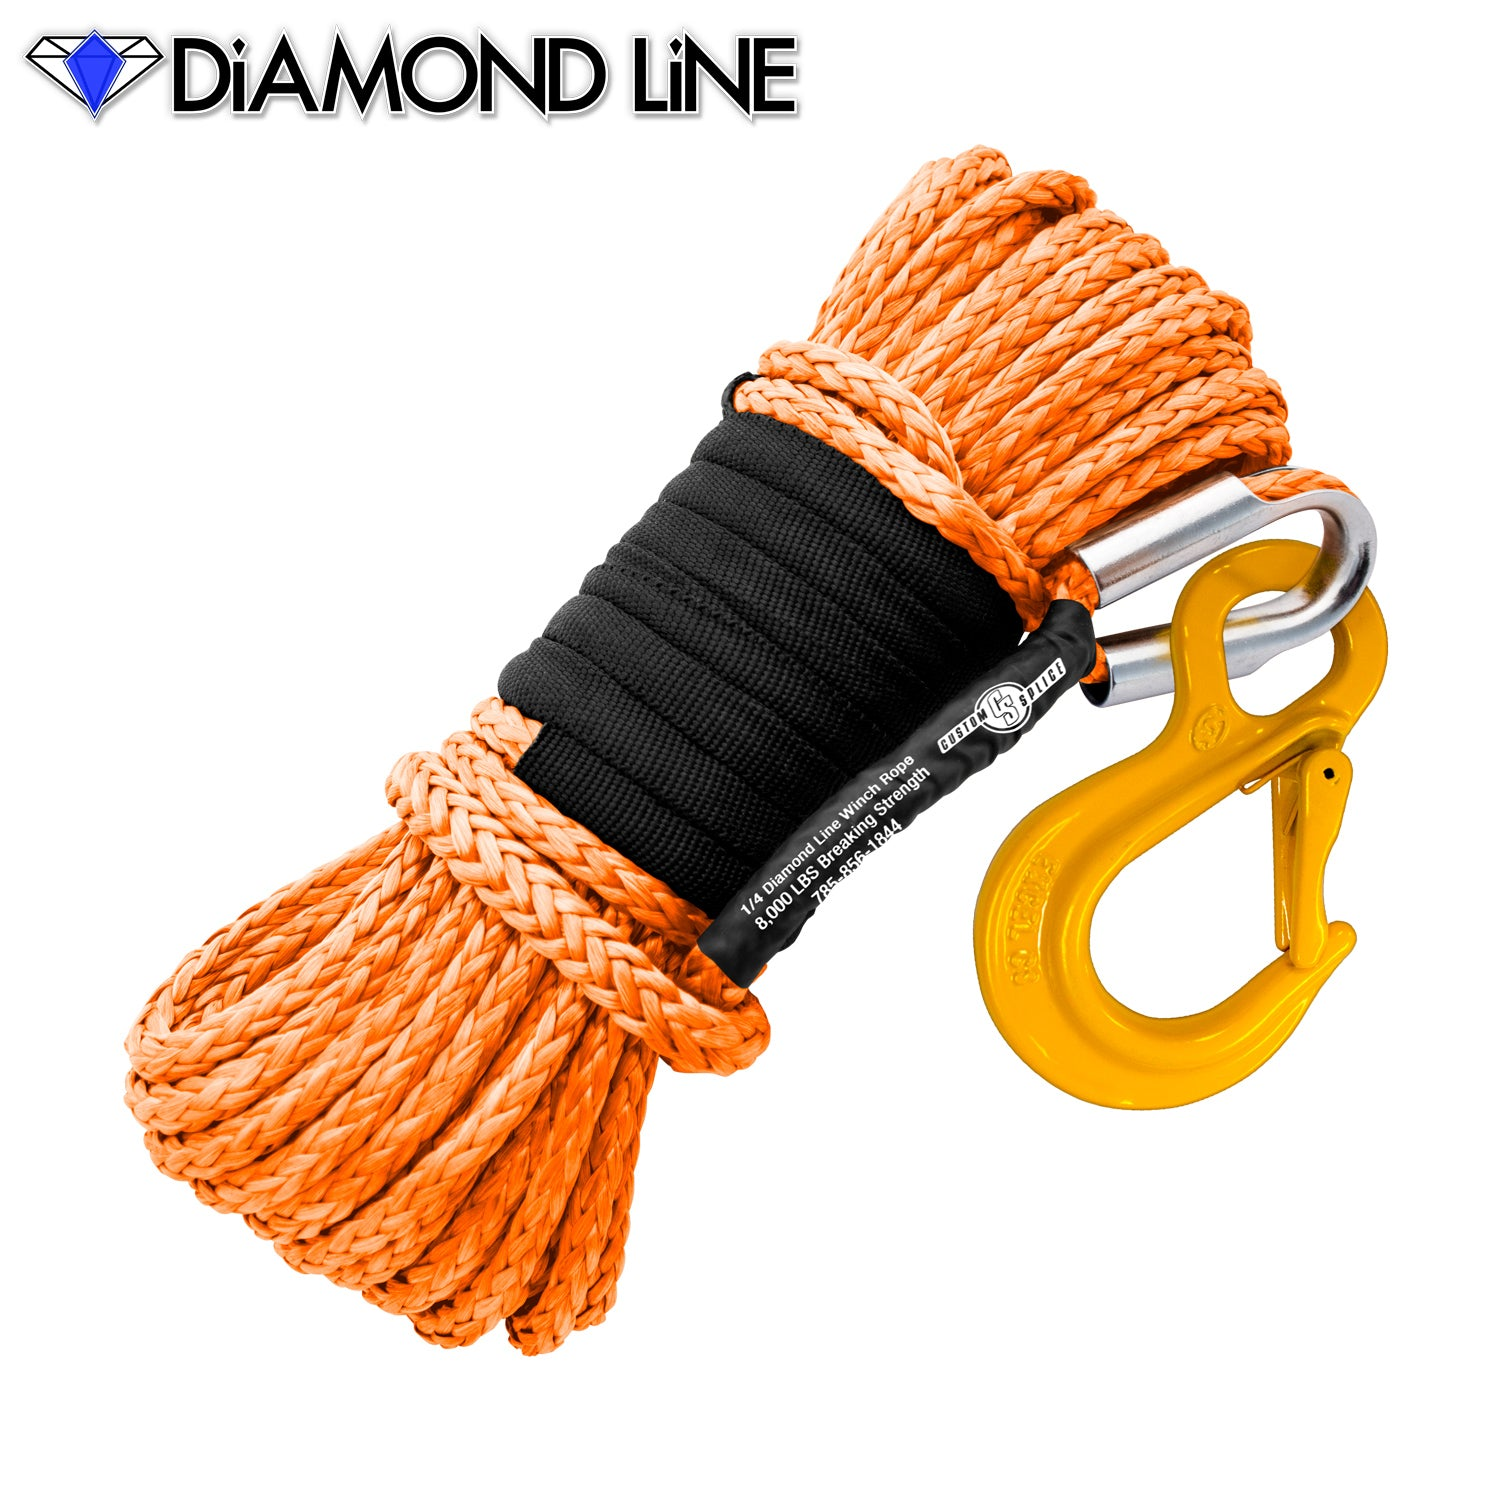 "1/4"" x 55' Diamond Line Synthetic Winch Rope Mainline - Orange with Hook."